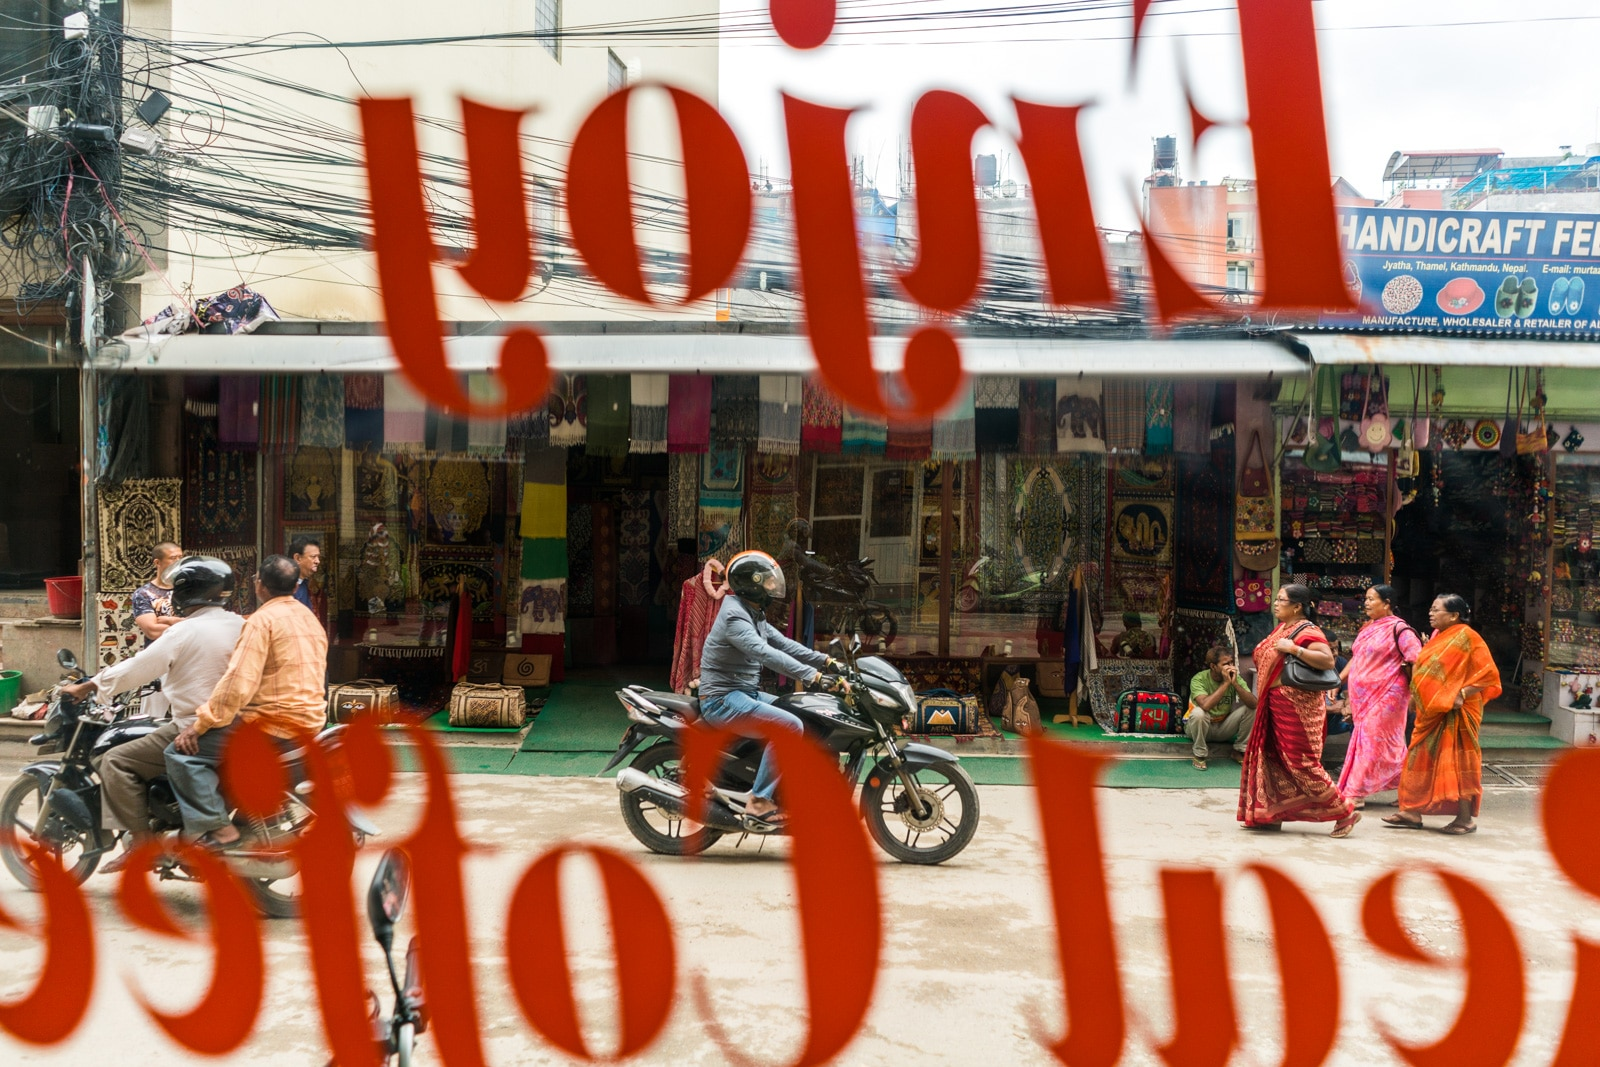 Photos of traveling in Nepal during monsoon season - Streets of Thamel from inside Chikusa Cafe - Lost With Purpose travel blog